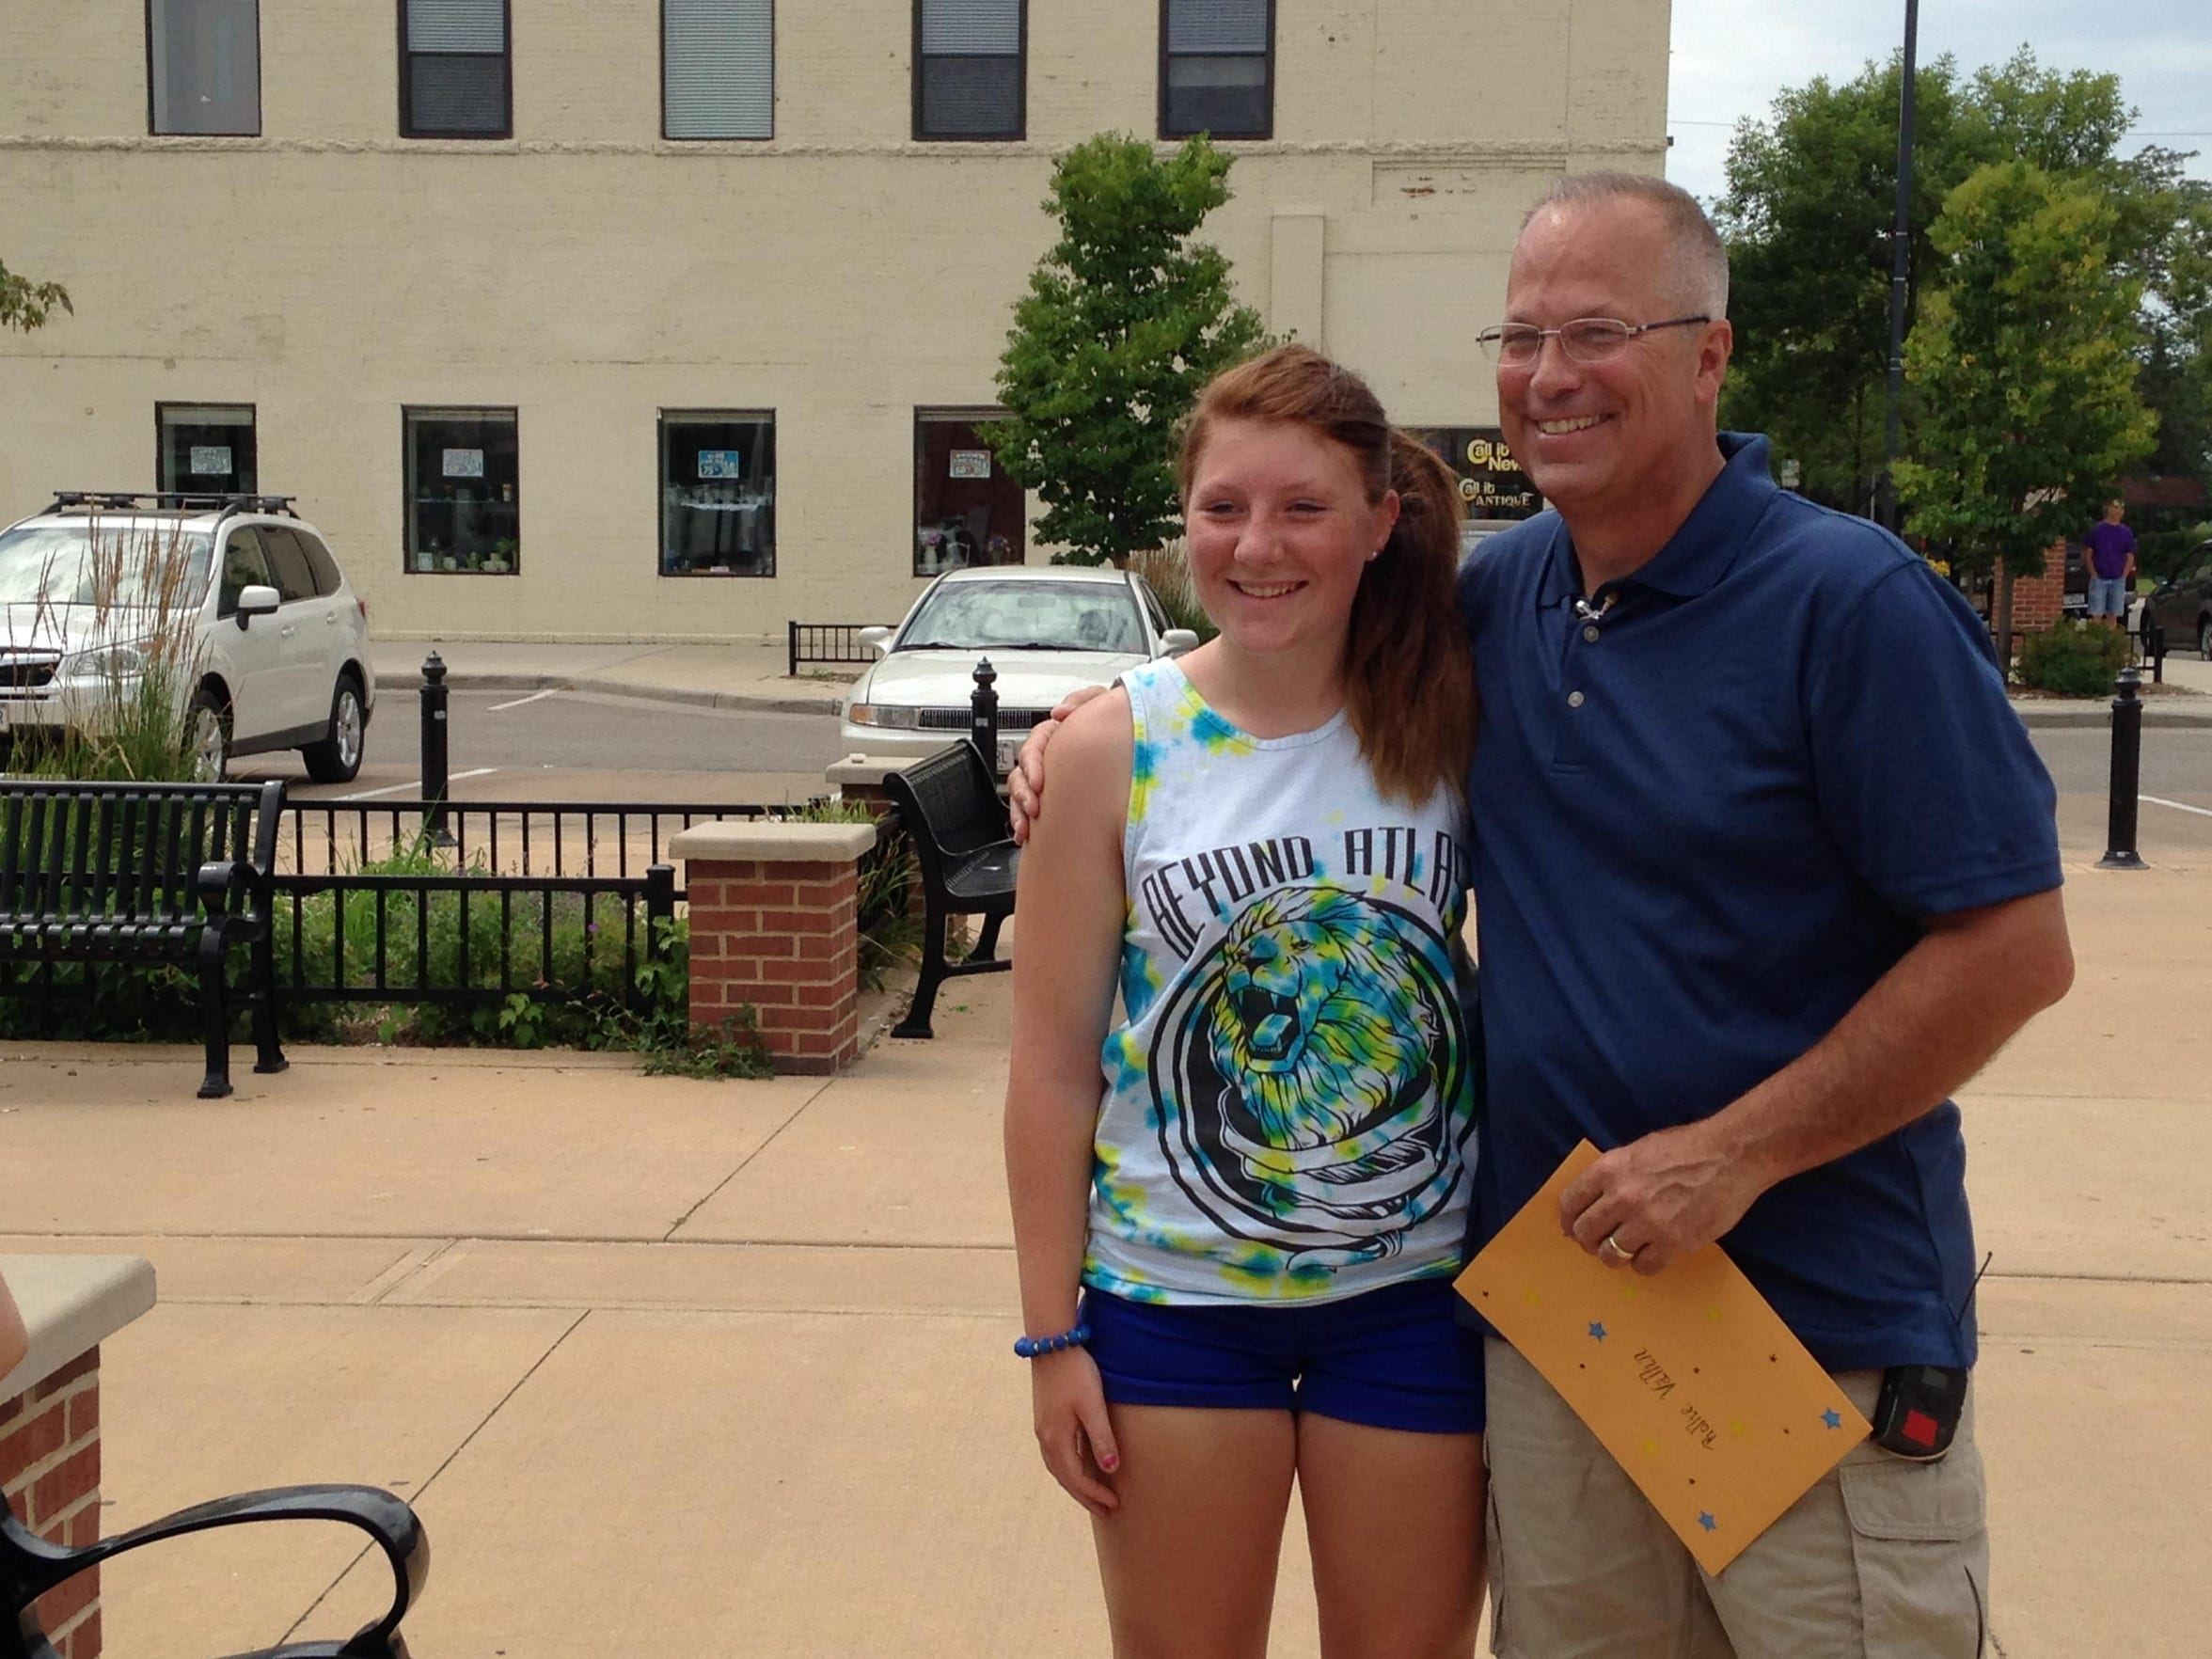 Jordin Rasmussen, left, and Rollie Vallin reunited on the Mathias Mitchell Public Square July 26. Vallin holds an envelope that contains information on the star the Rasmussen family named after him.